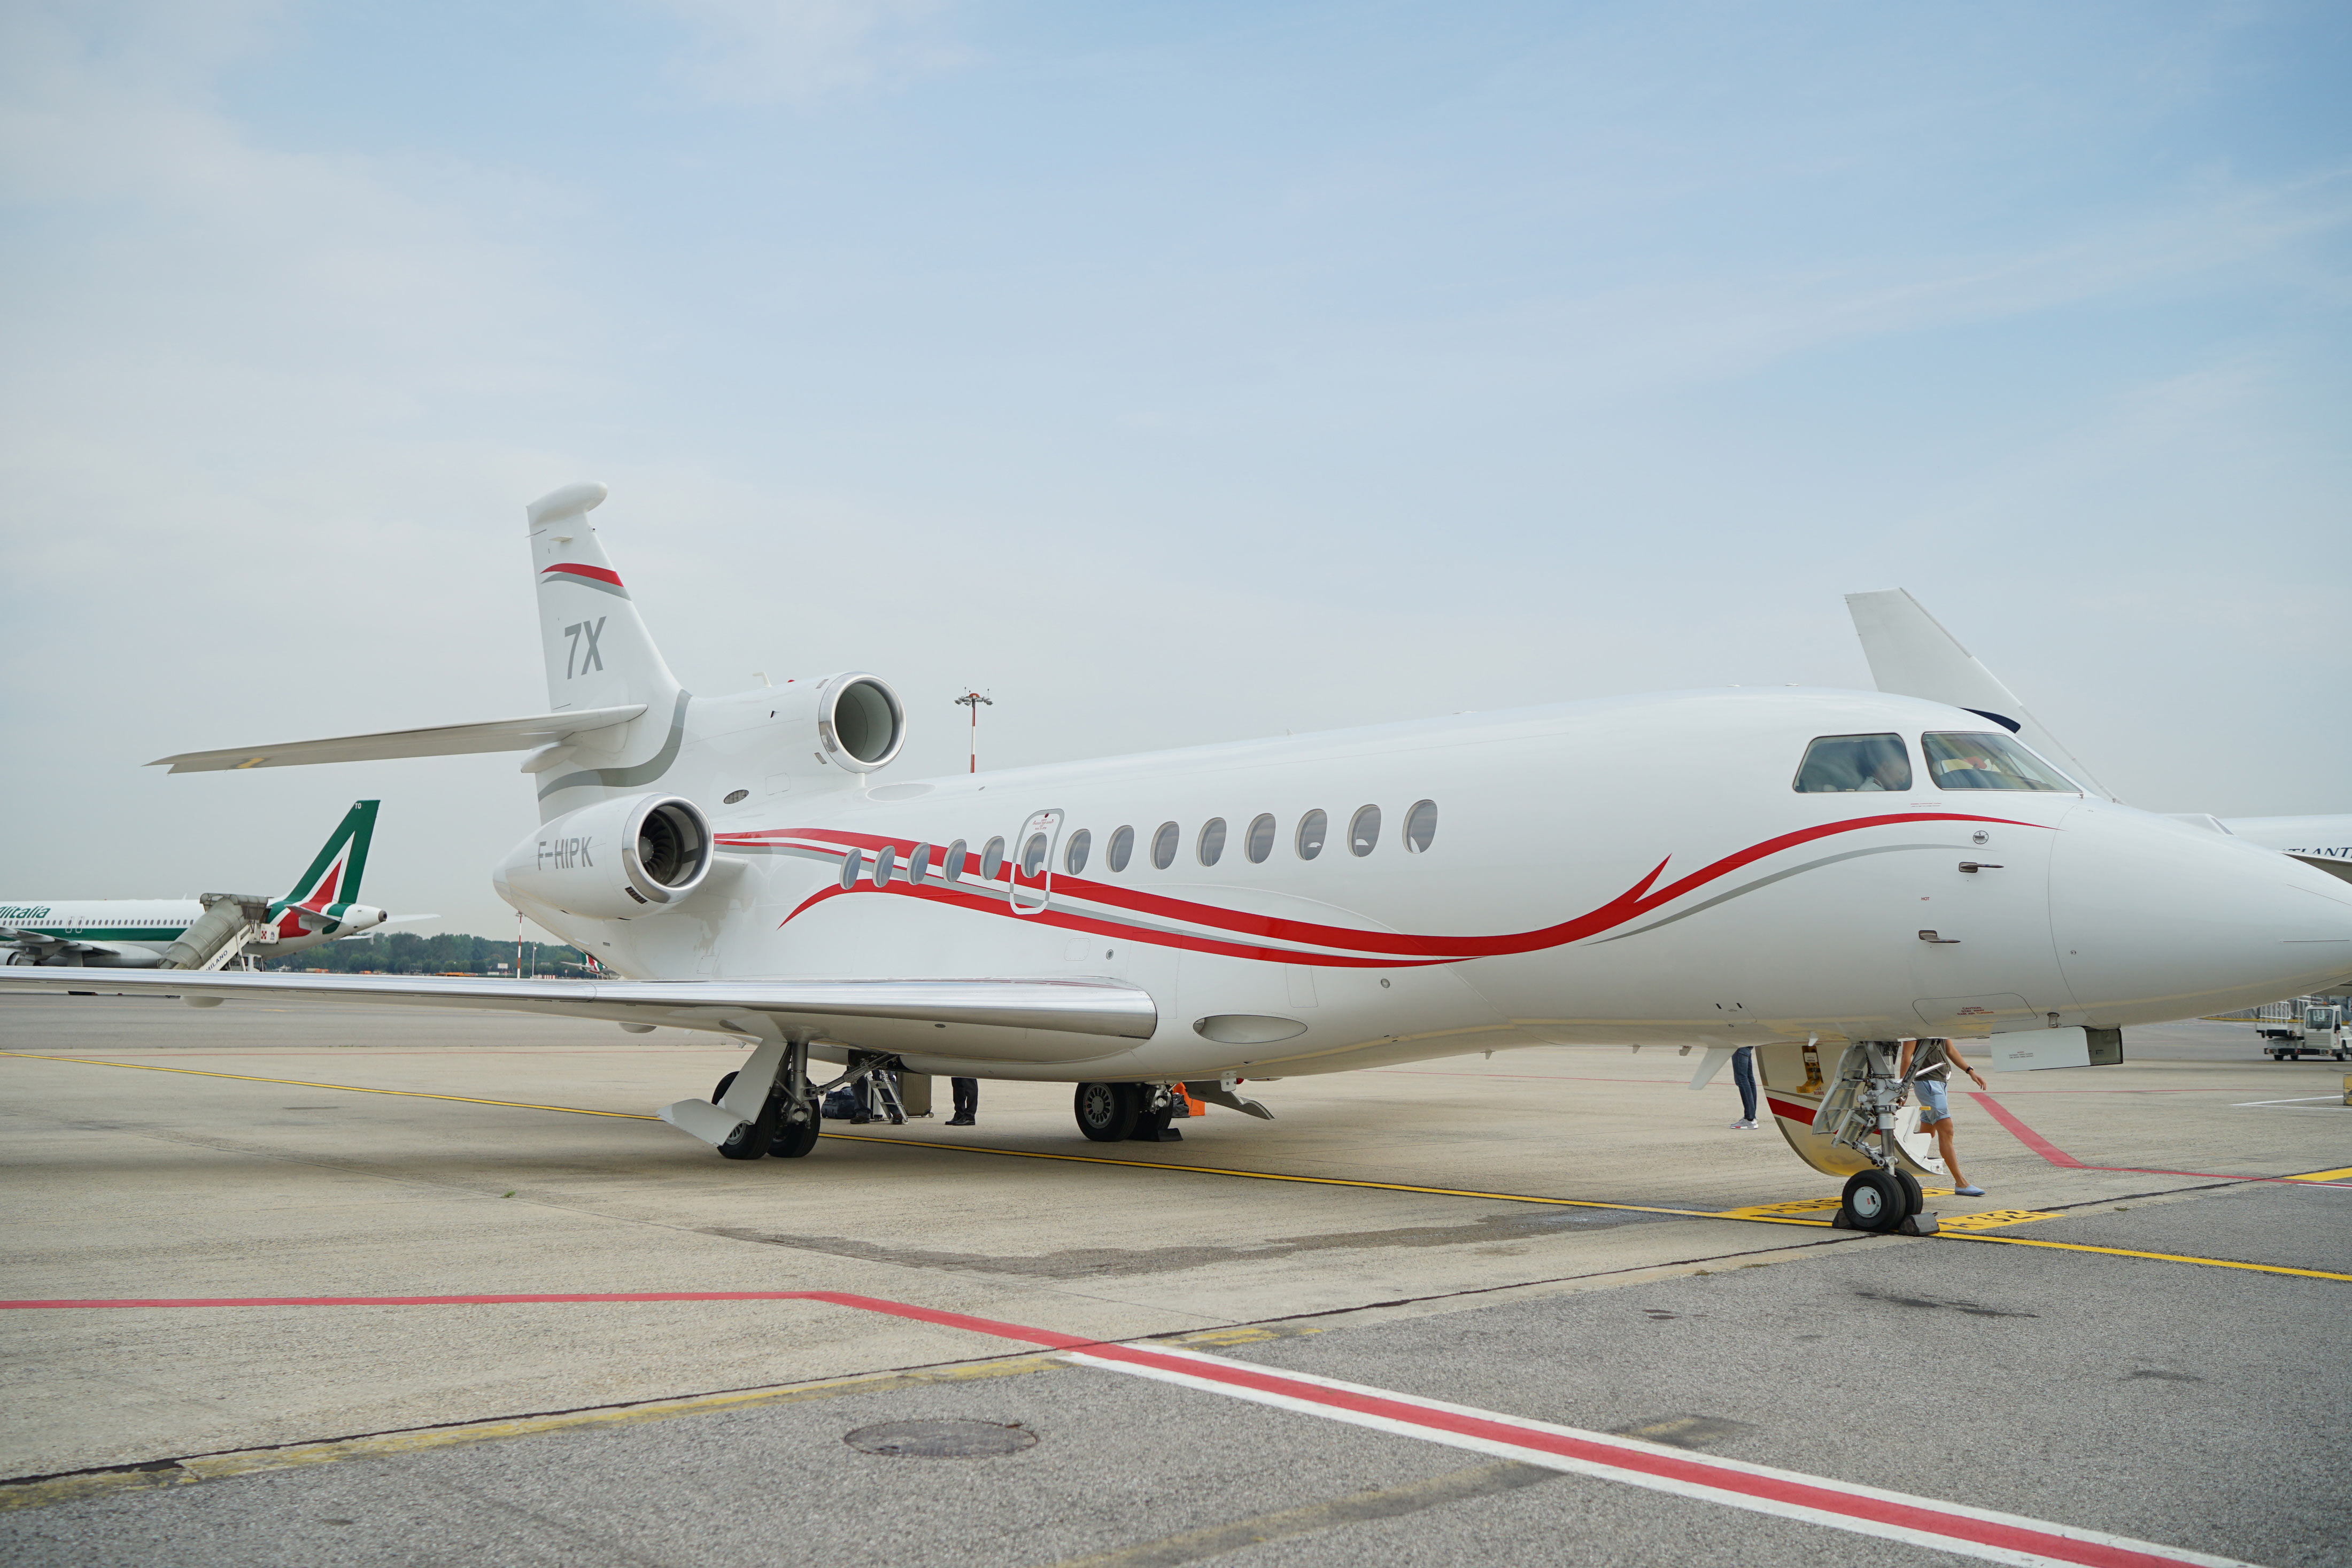 The Dassault Falcon 7X, chartered from Asian Sky Group